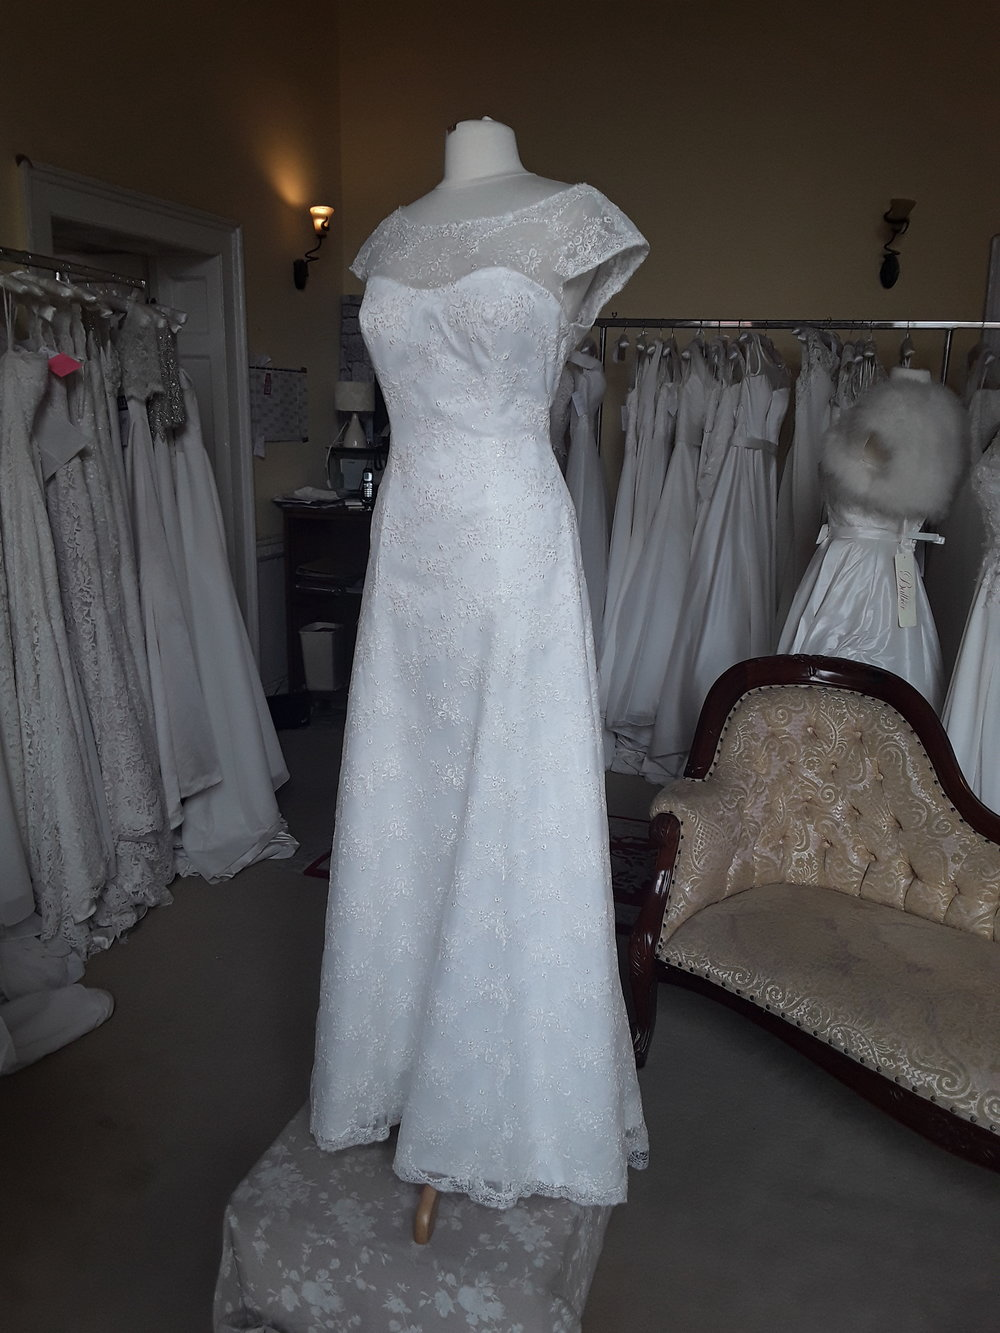 White Rose Lace Dress  Colour: Ivory  Size: 16  Was €1,495 now €900  Ref: E109/Angelina